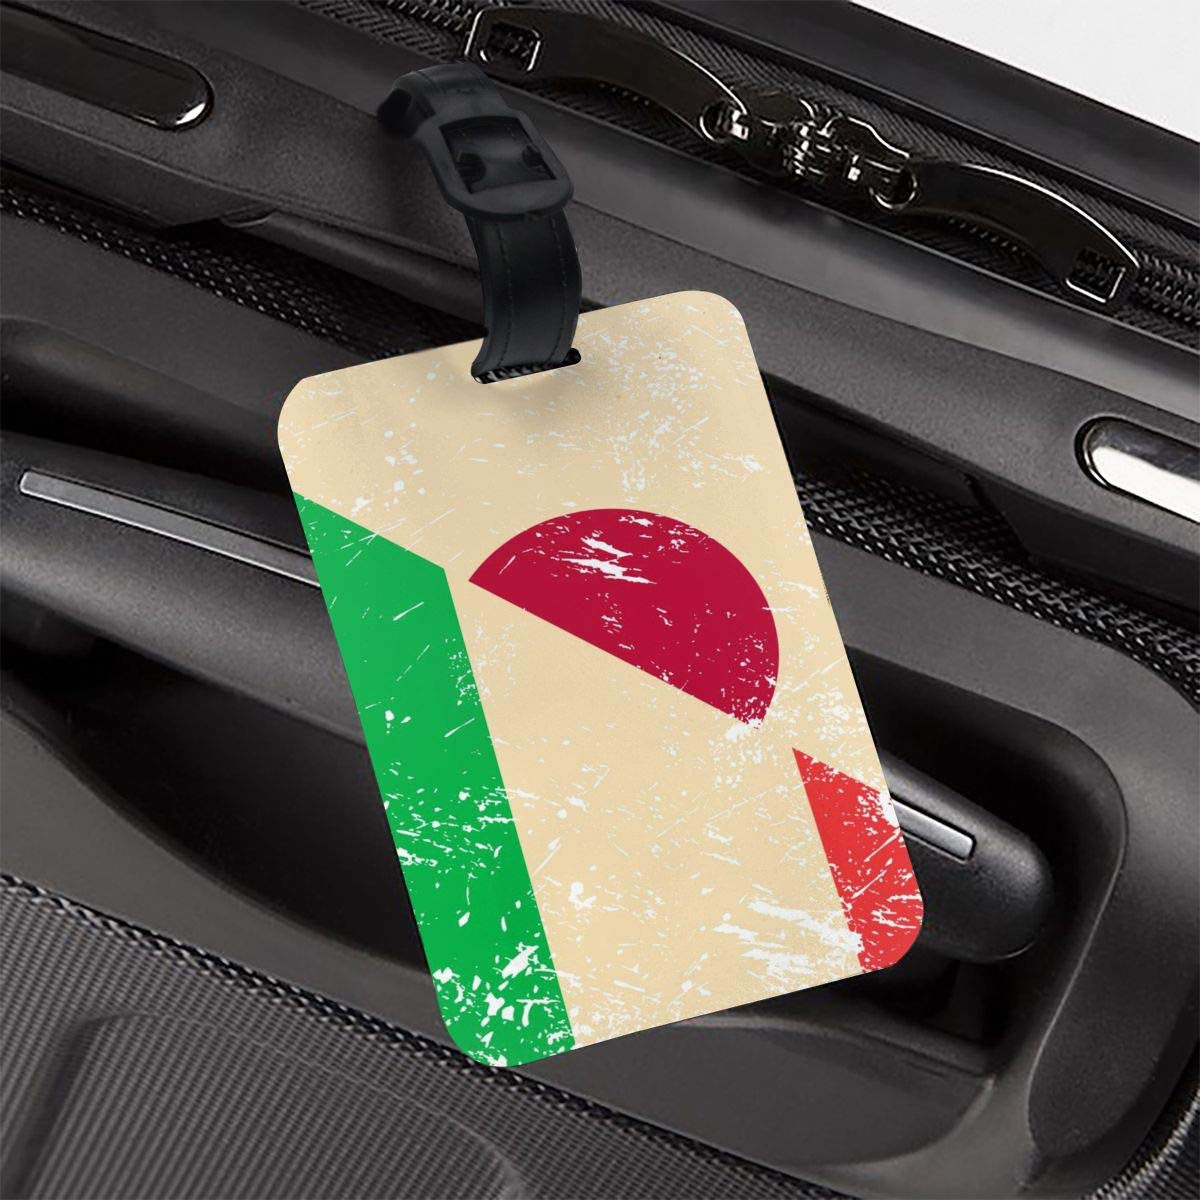 NB UUD Italy and Japan Retro Flag Travel Luggage Tag Printed Employees Card Luggage Tag Holders Travel ID Identification Labels for Baggage Suitcases Bags